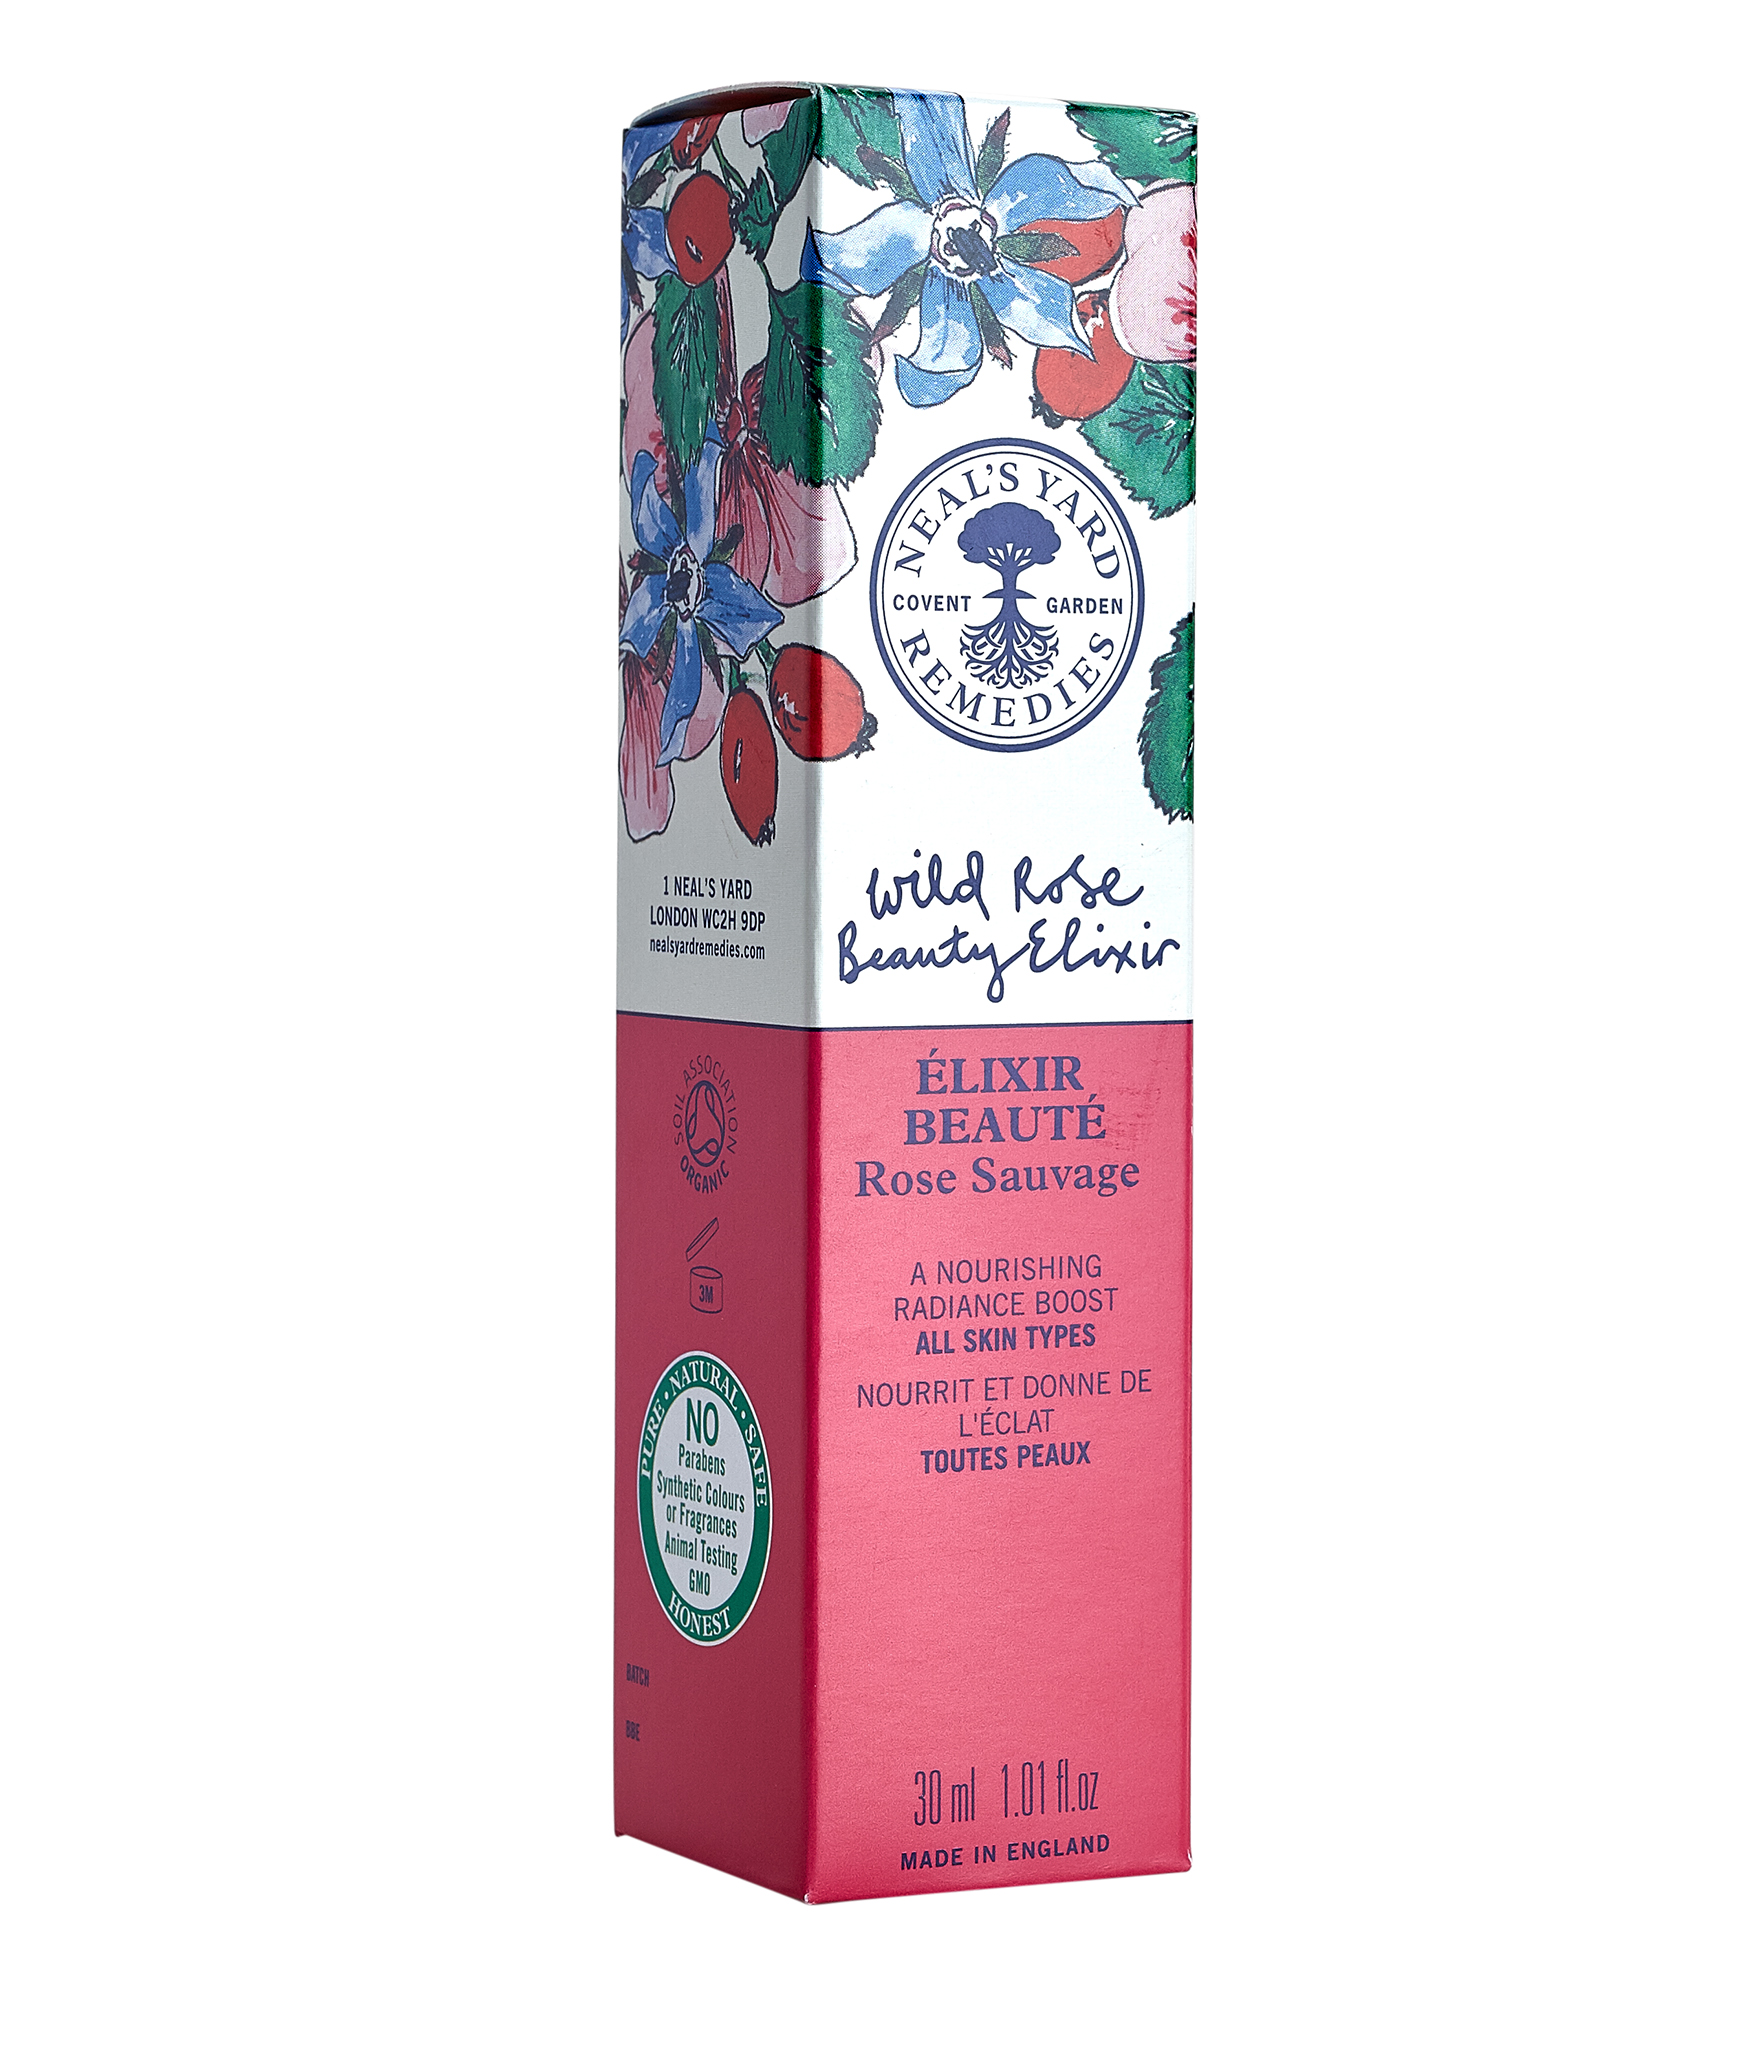 neal's yard wild rose beauty elixir